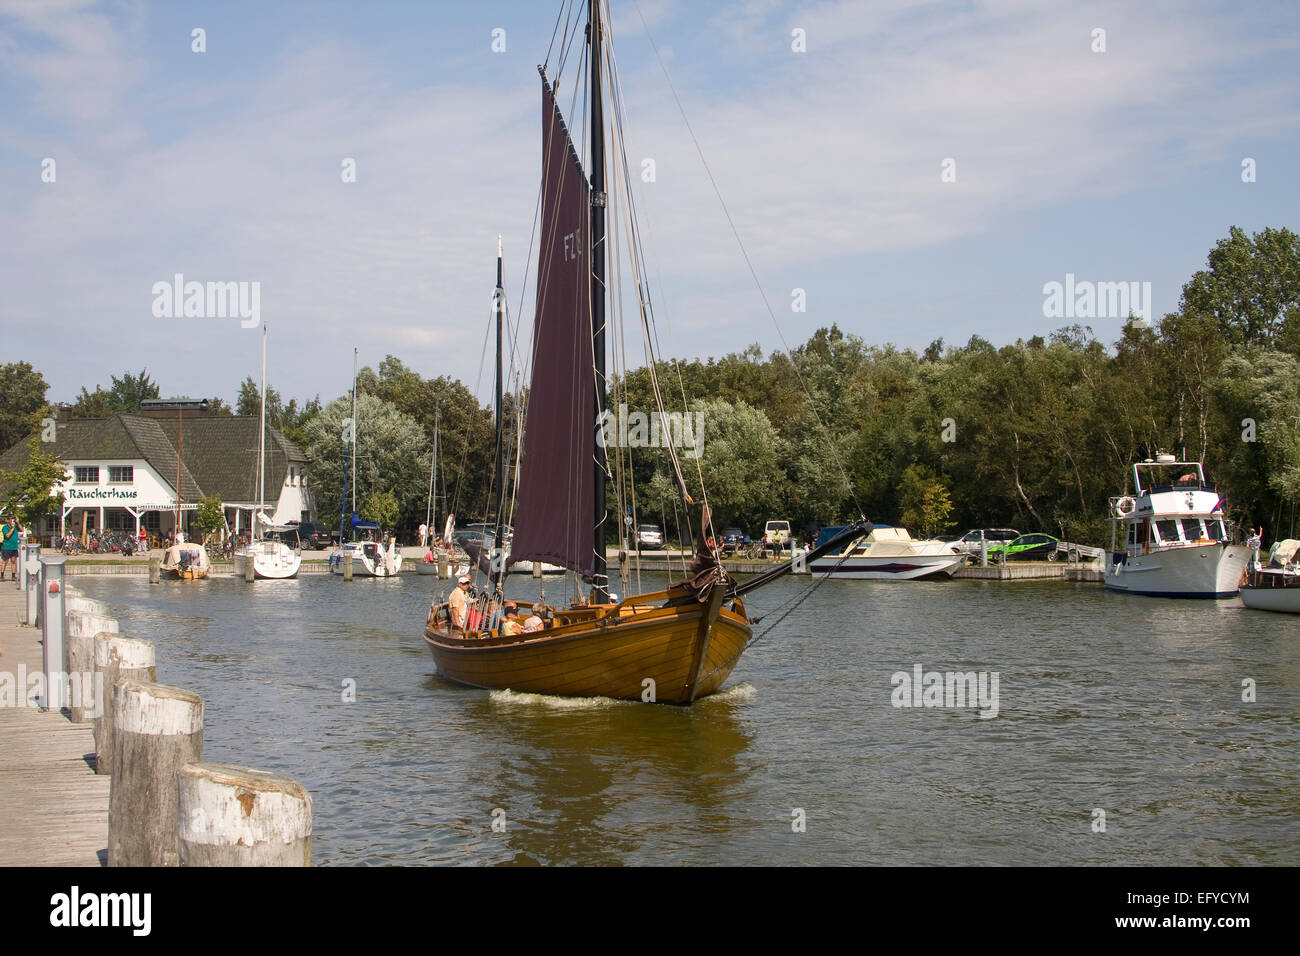 A traditional Zeesboot in the port of Althagen to Ahrenshoop on the Darß, Mecklenburg-Vorpommern - Stock Image